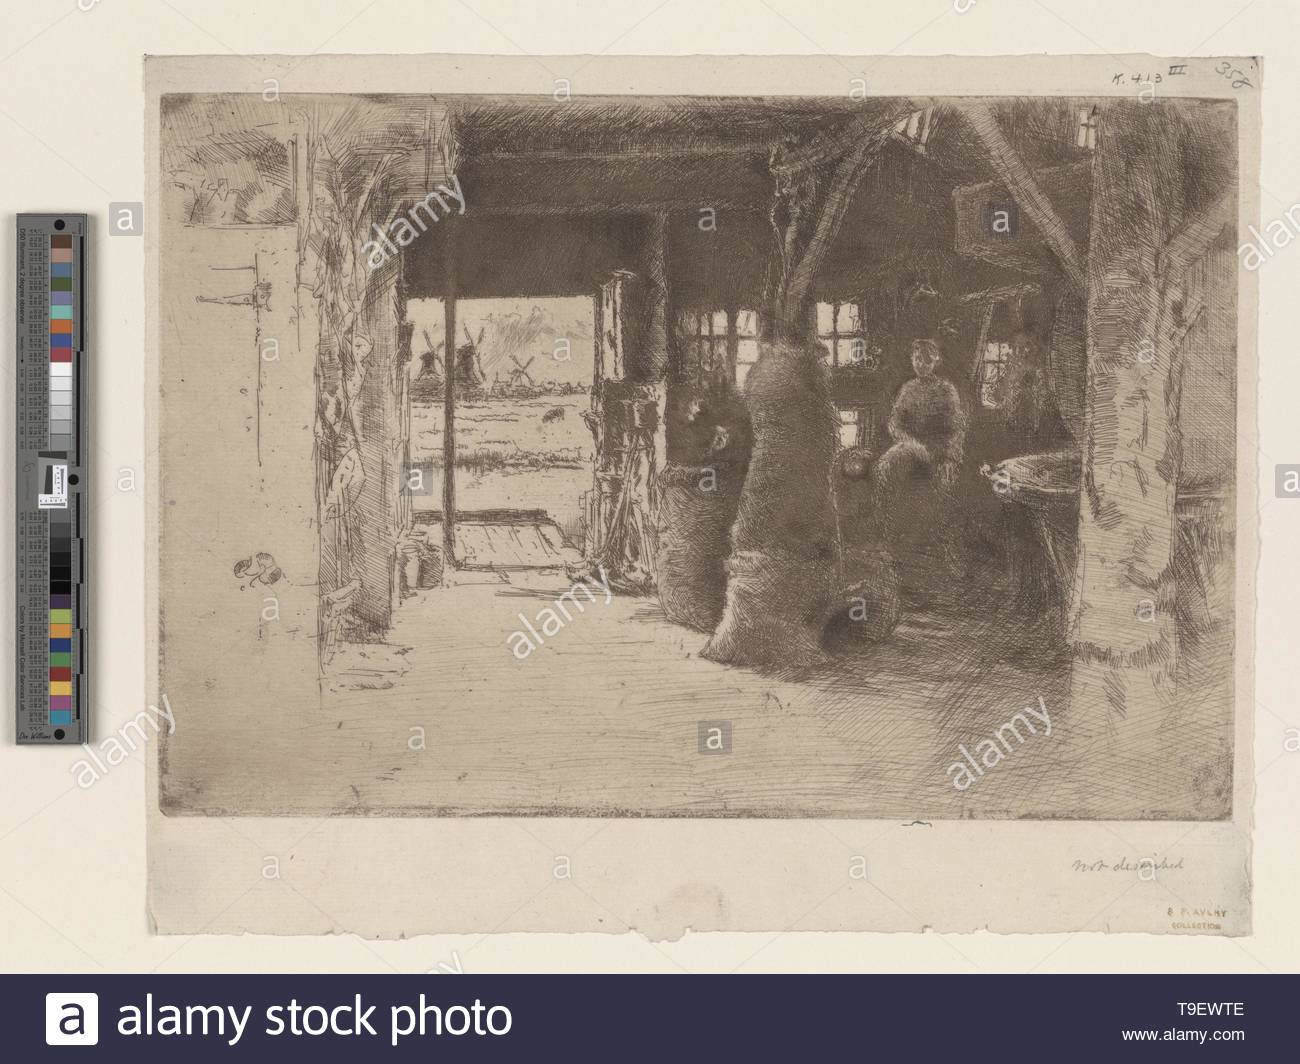 Whistler,JamesMcNeill(1834-1903)-The mill - Stock Image